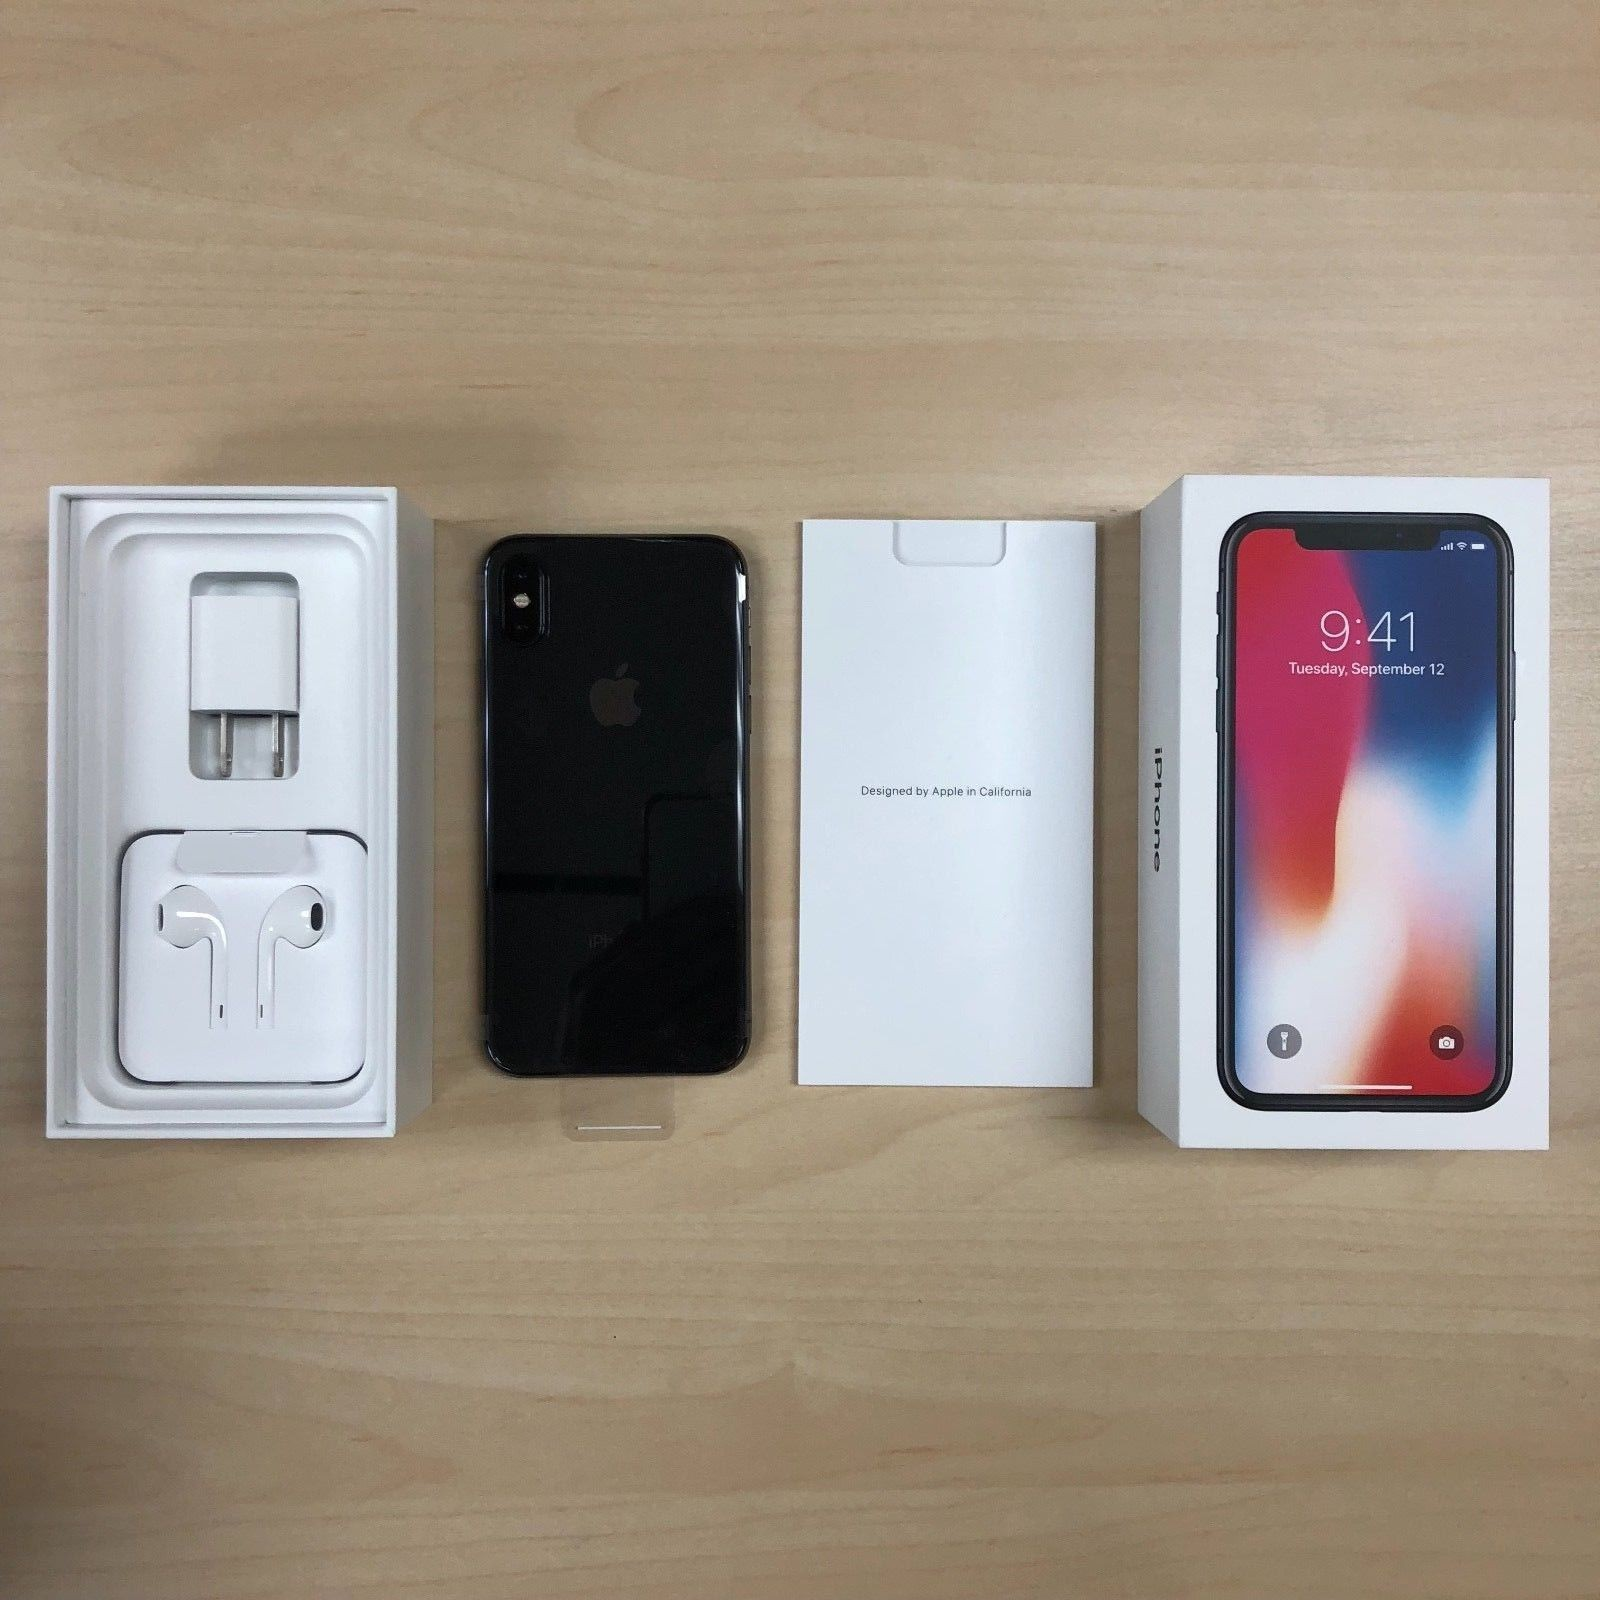 Sell Apple iPhone X whatsapp +256704096518 - Italy - bazarphones@hotmail.com